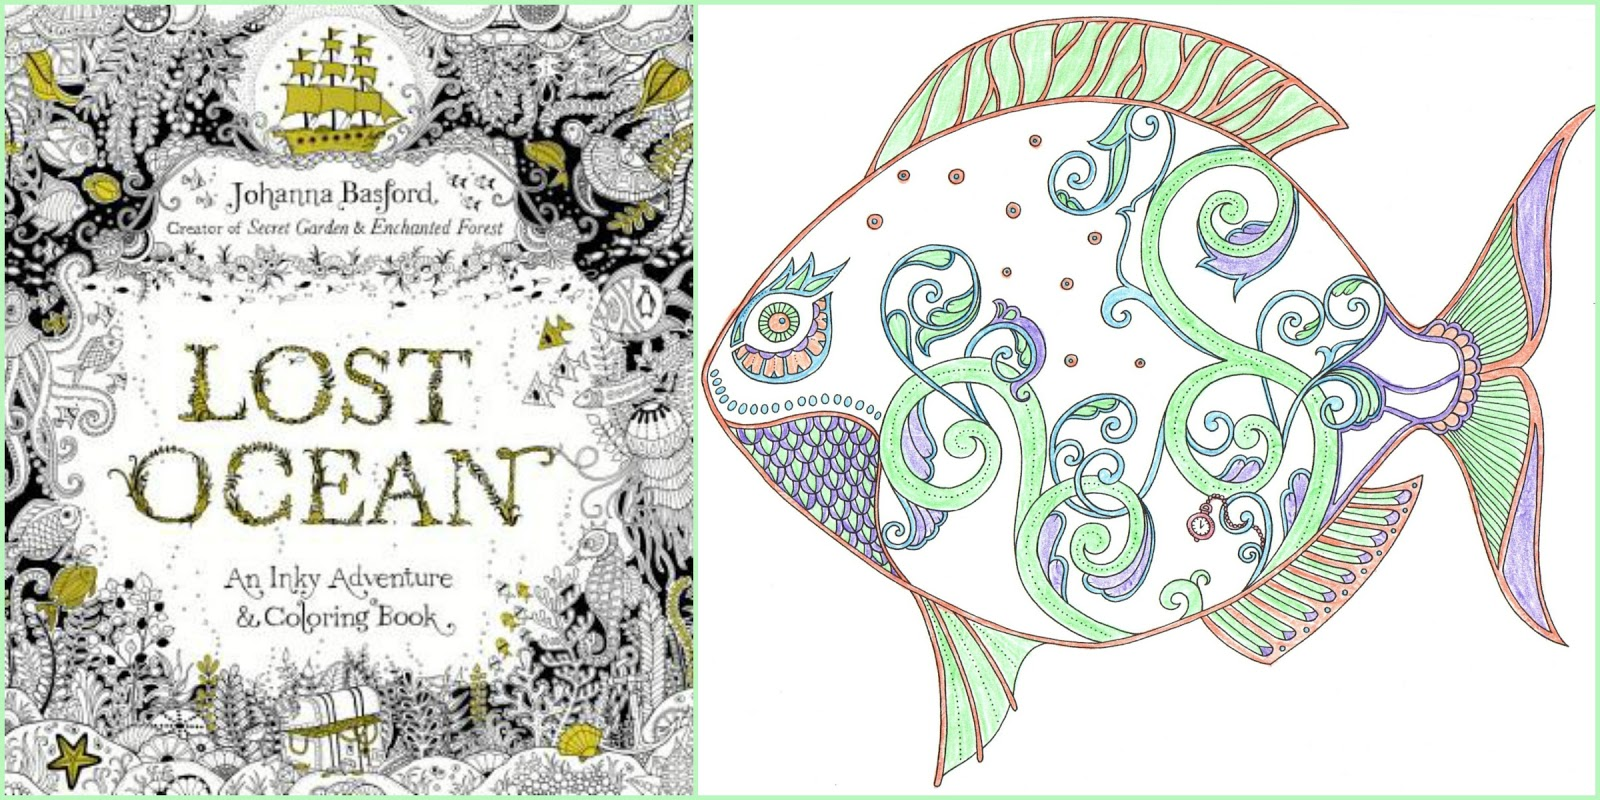 Lost Ocean By Johanna Basford Is Subtitled An Inky Adventure Coloring Book